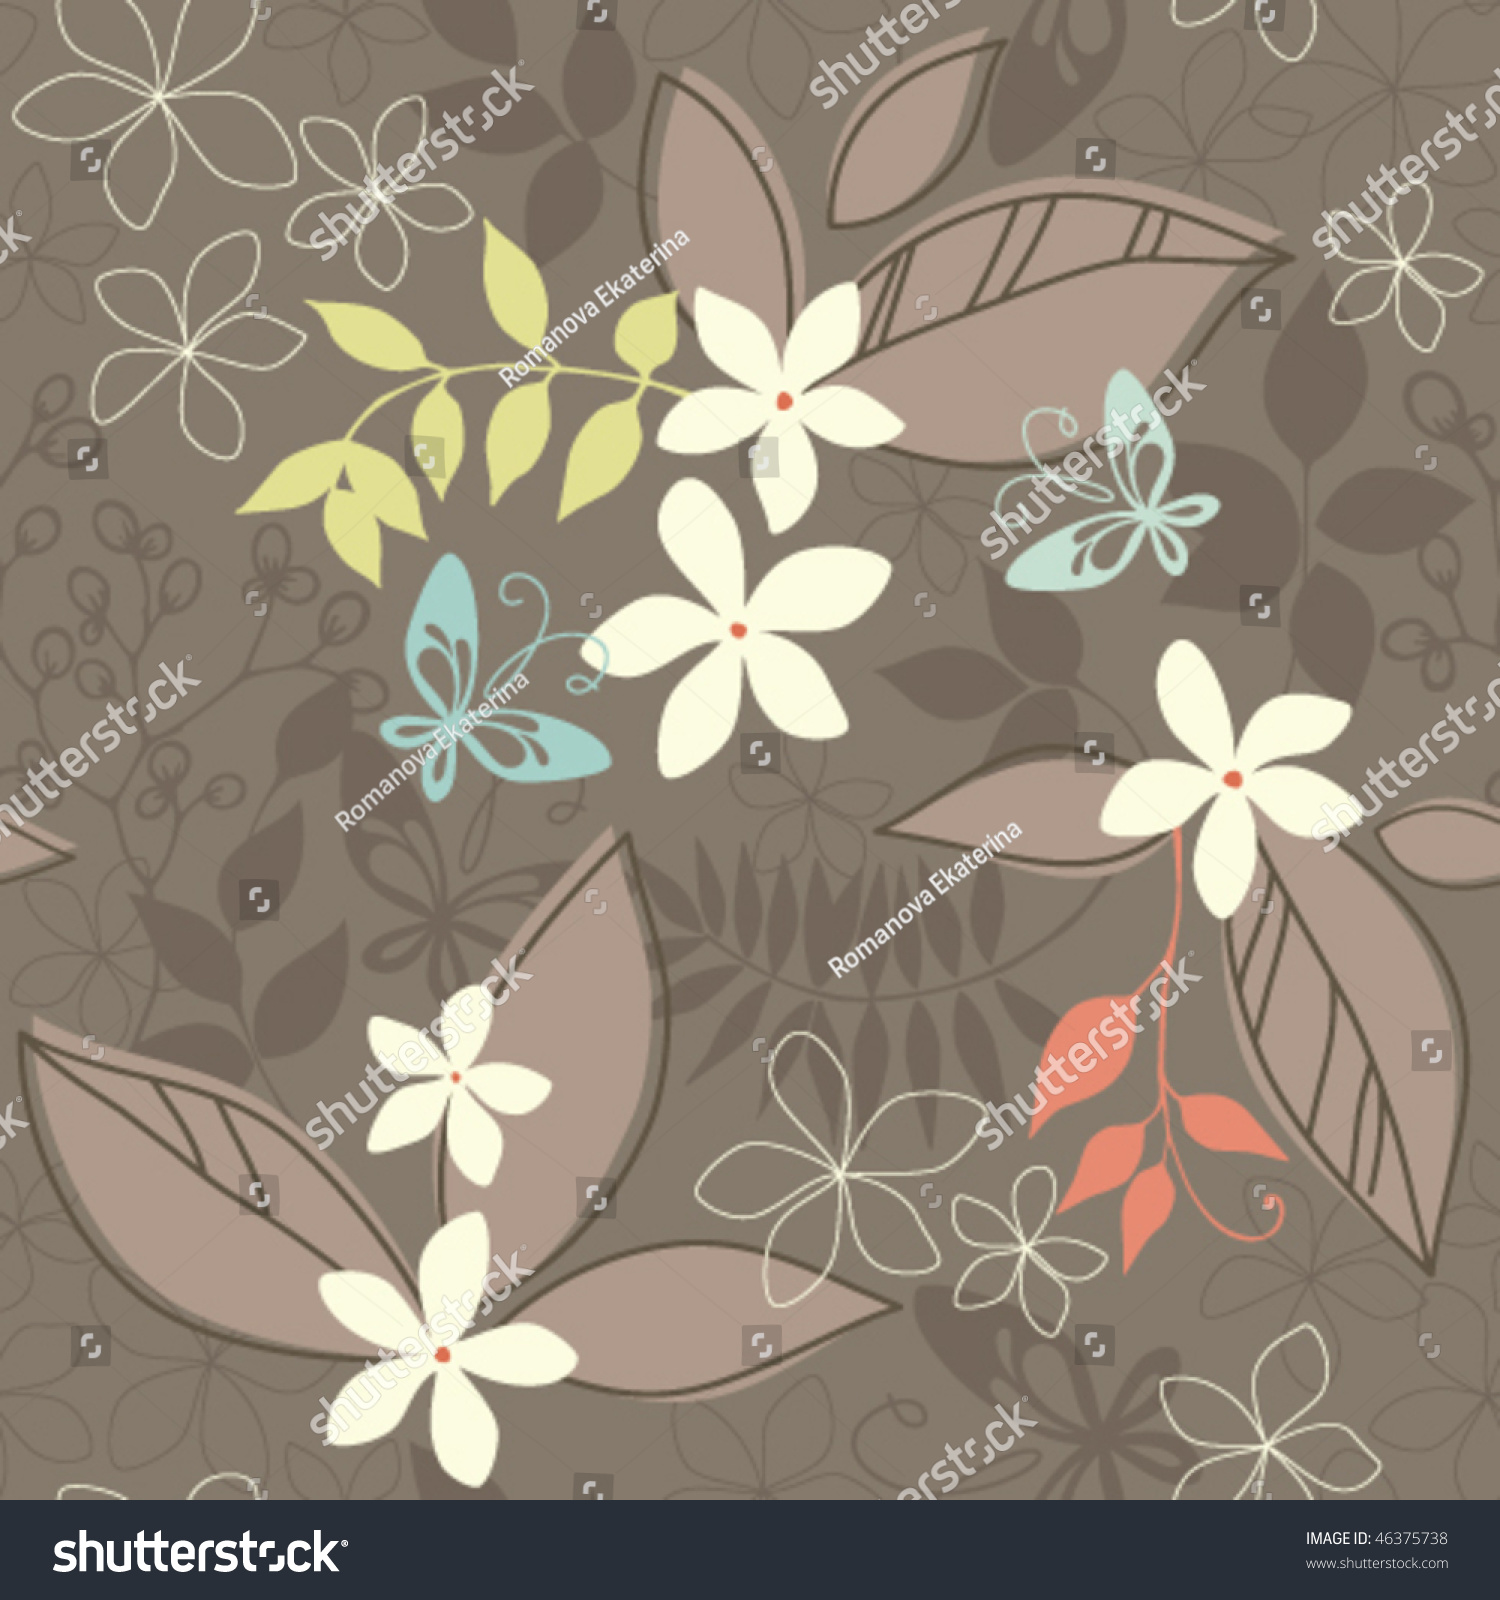 Easy To Use Textile Wallpaper Seamless Pattern Stock